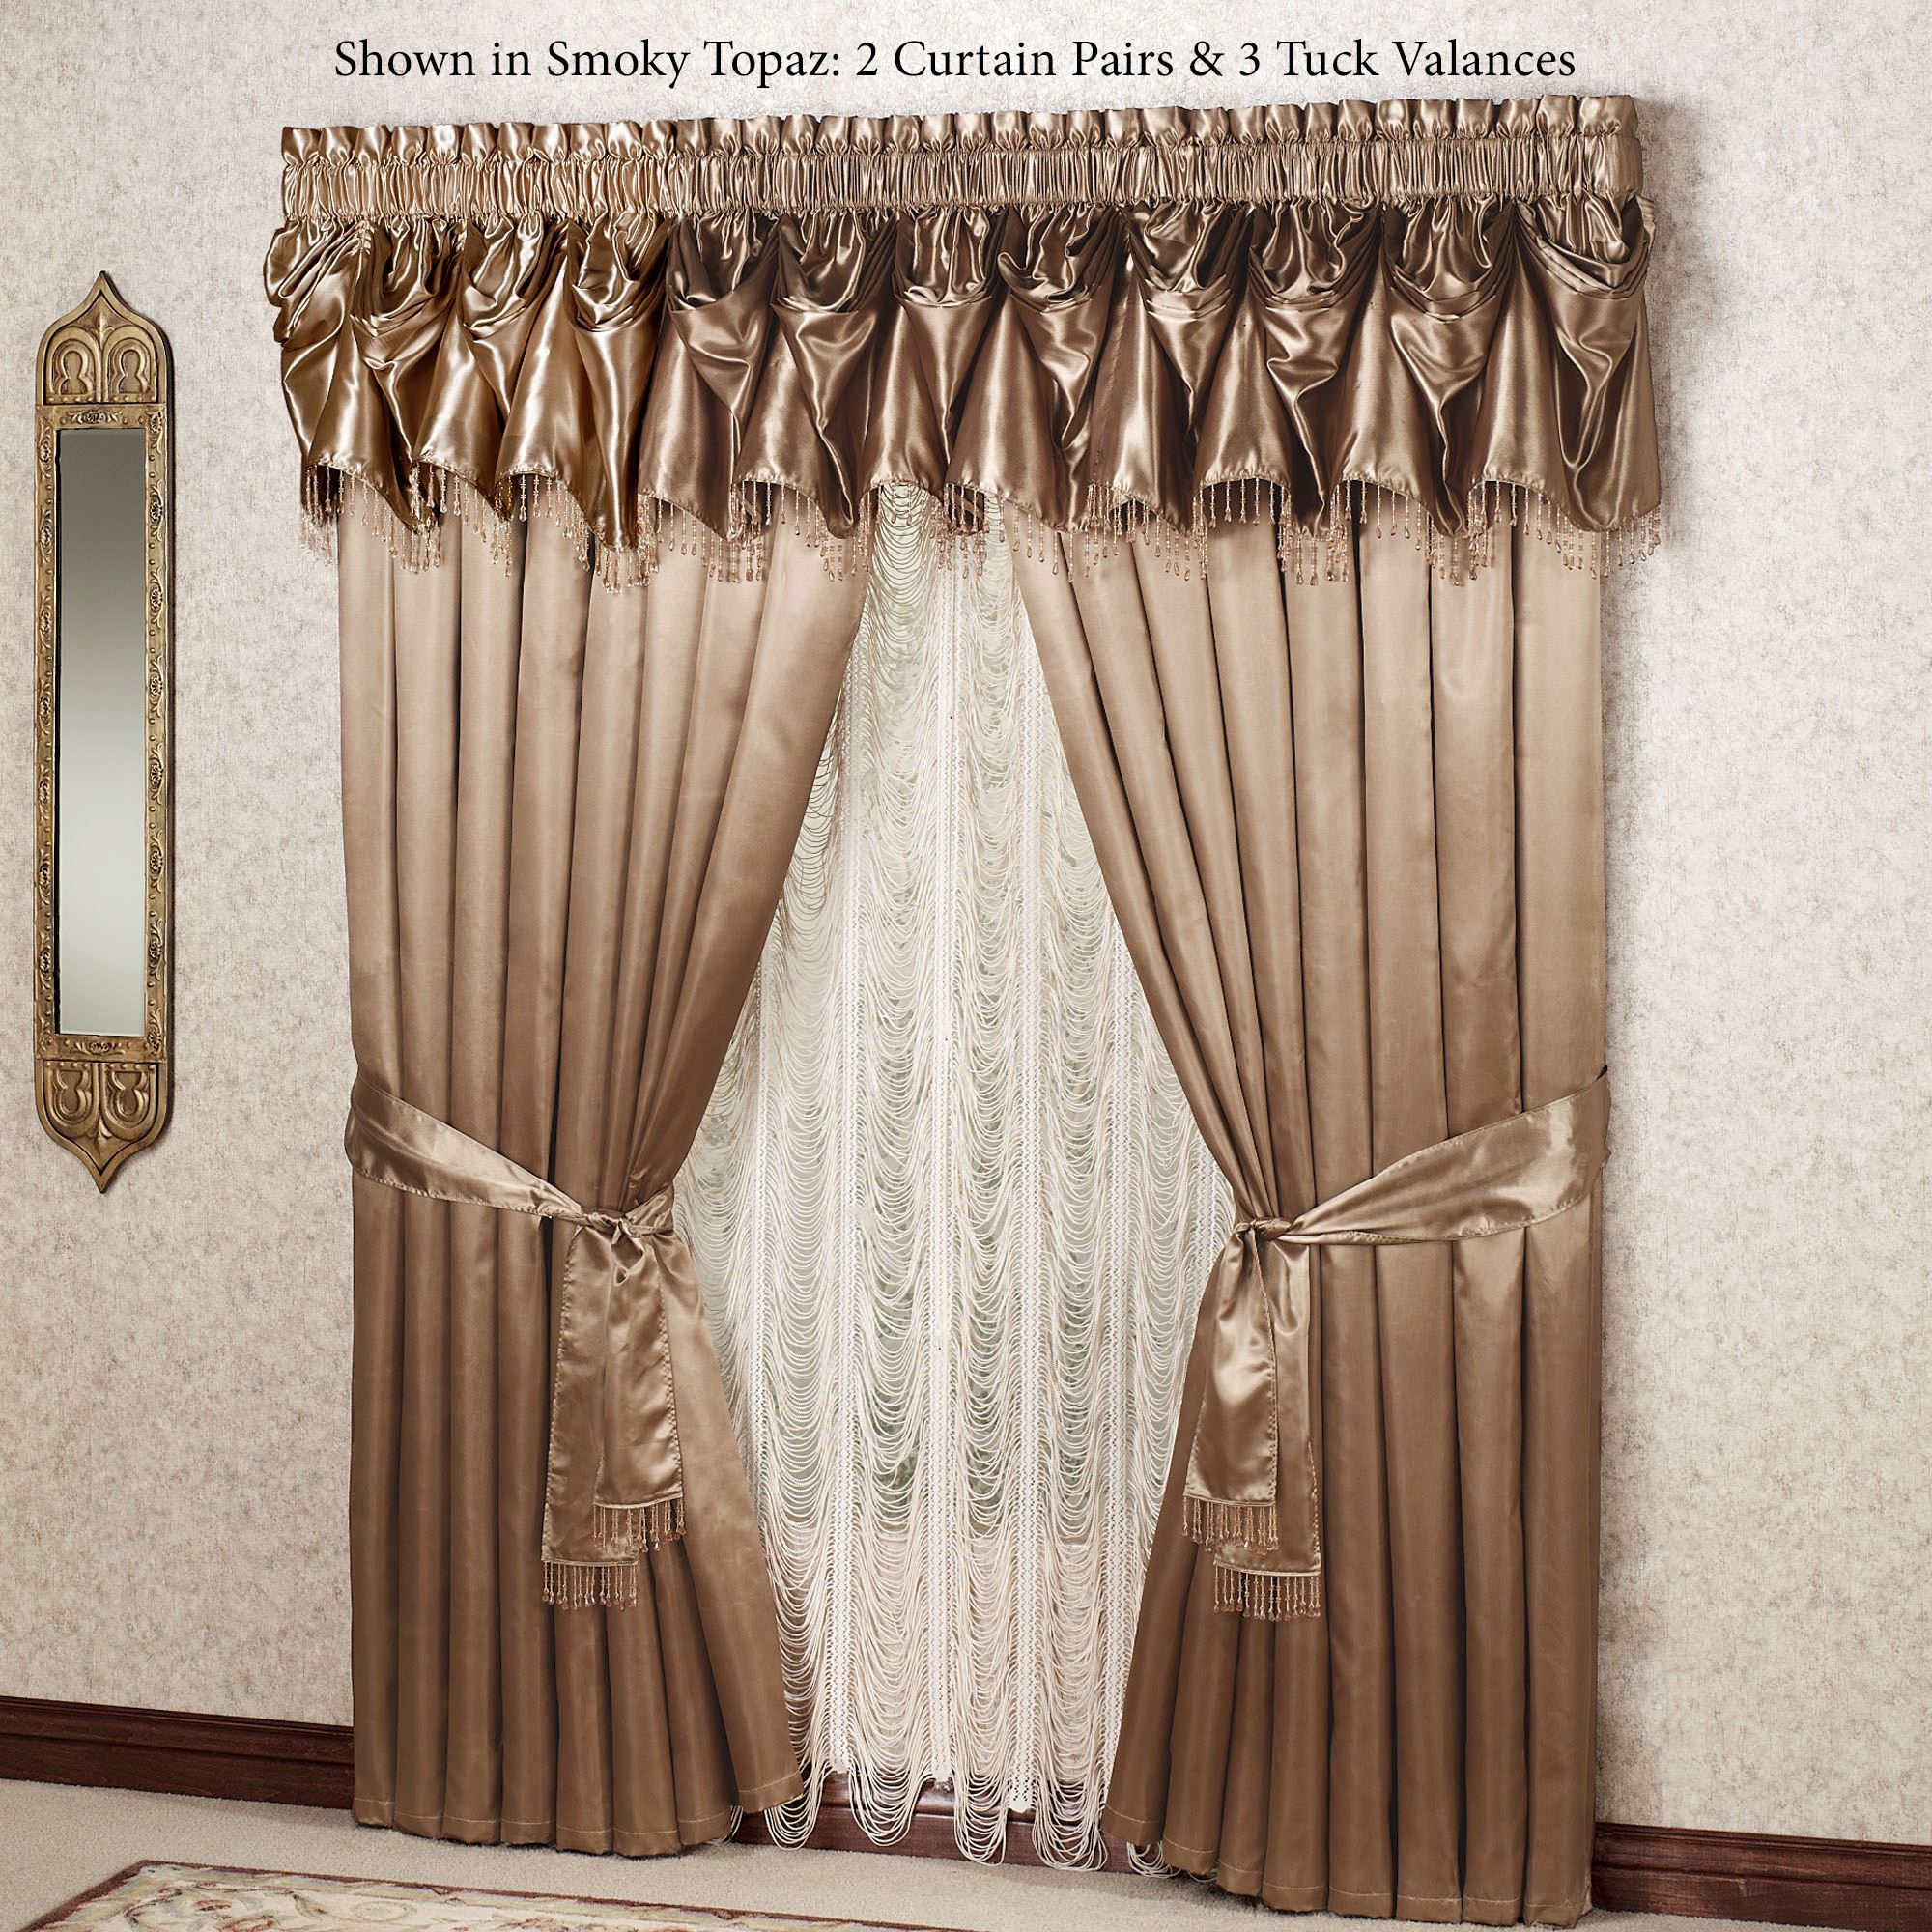 Portia Ii Tuck Valance Window Treatments